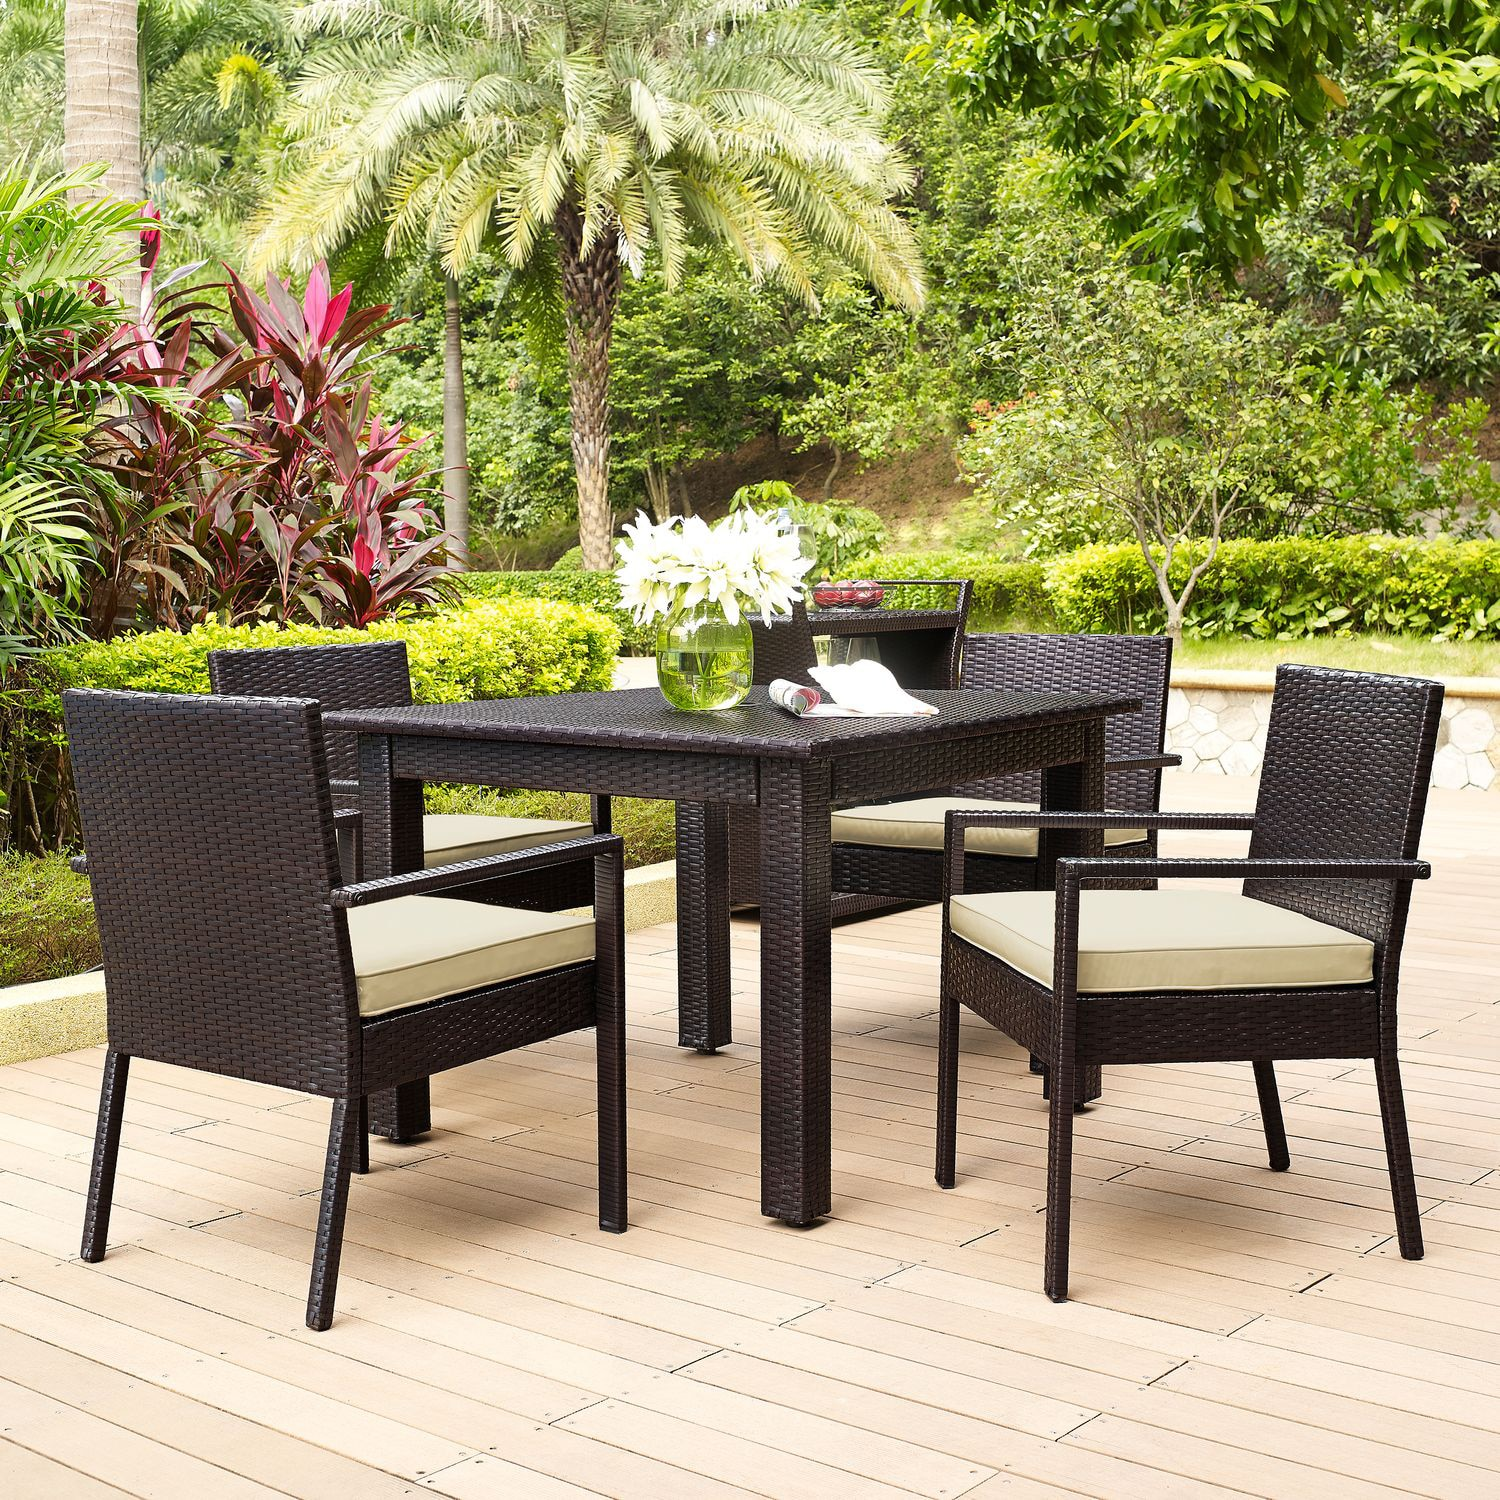 Aldo Outdoor Table And 4 Arm Chairs Set Brown American